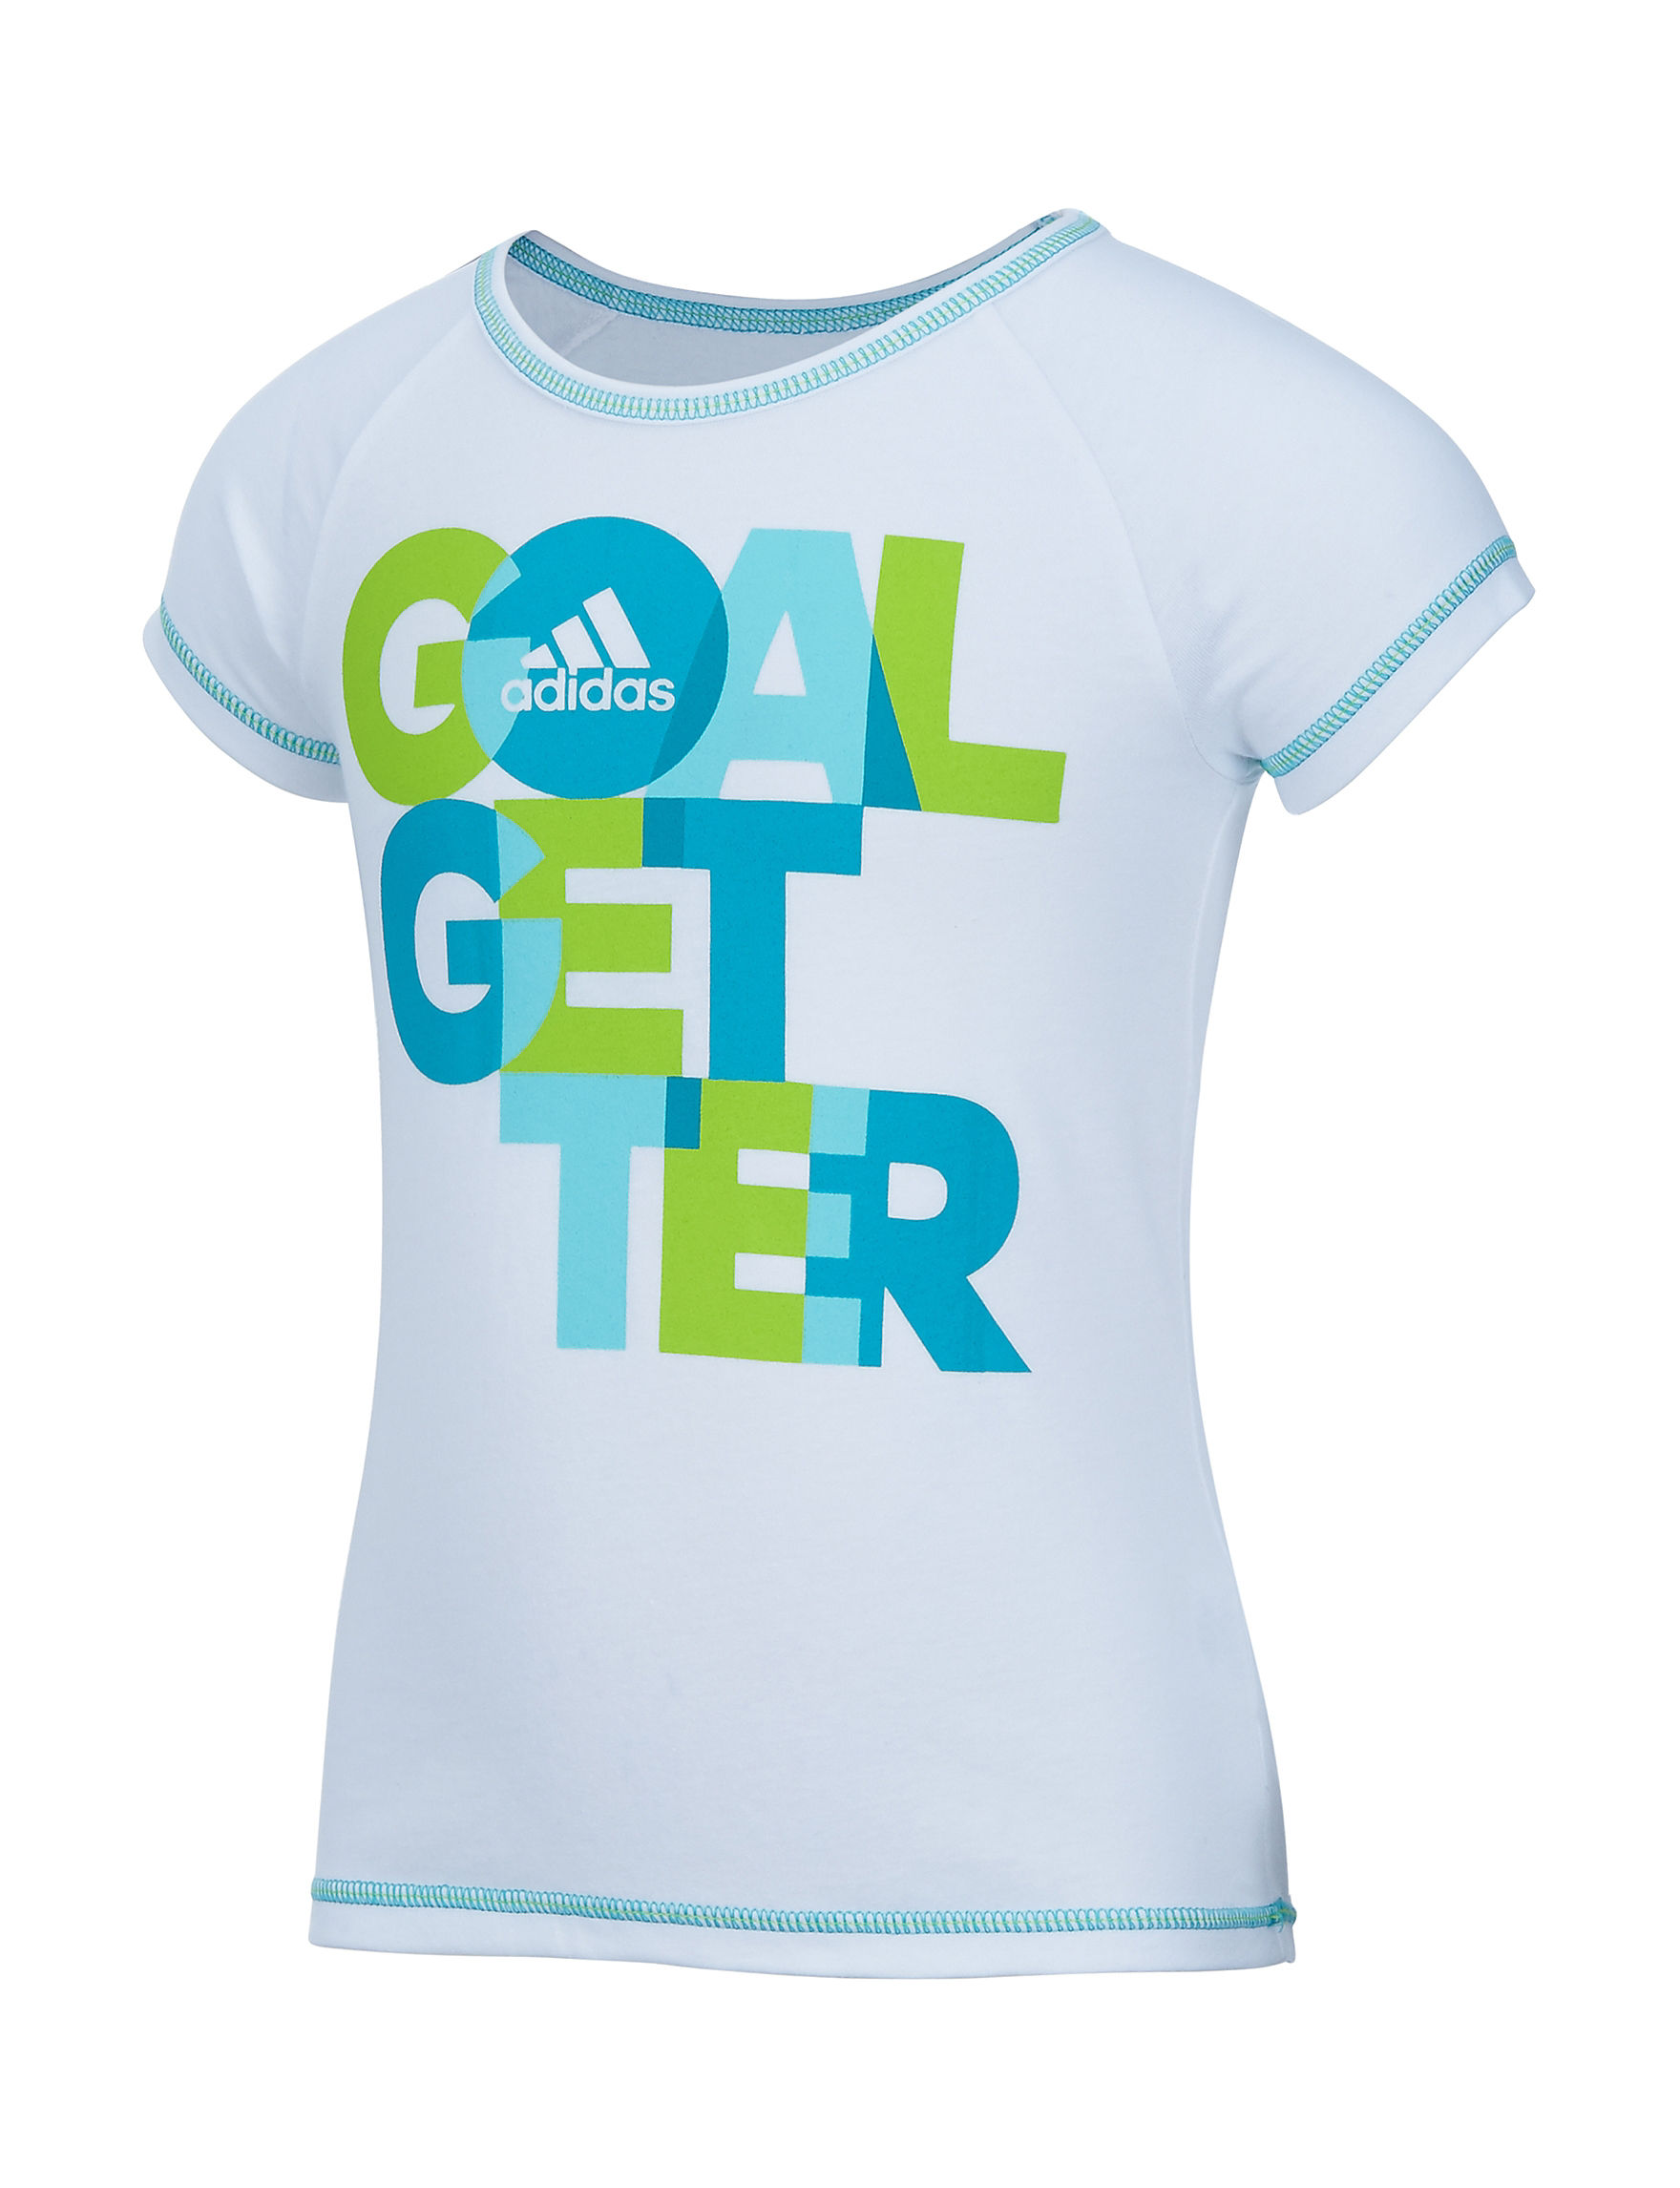 Adidas White Tees & Tanks